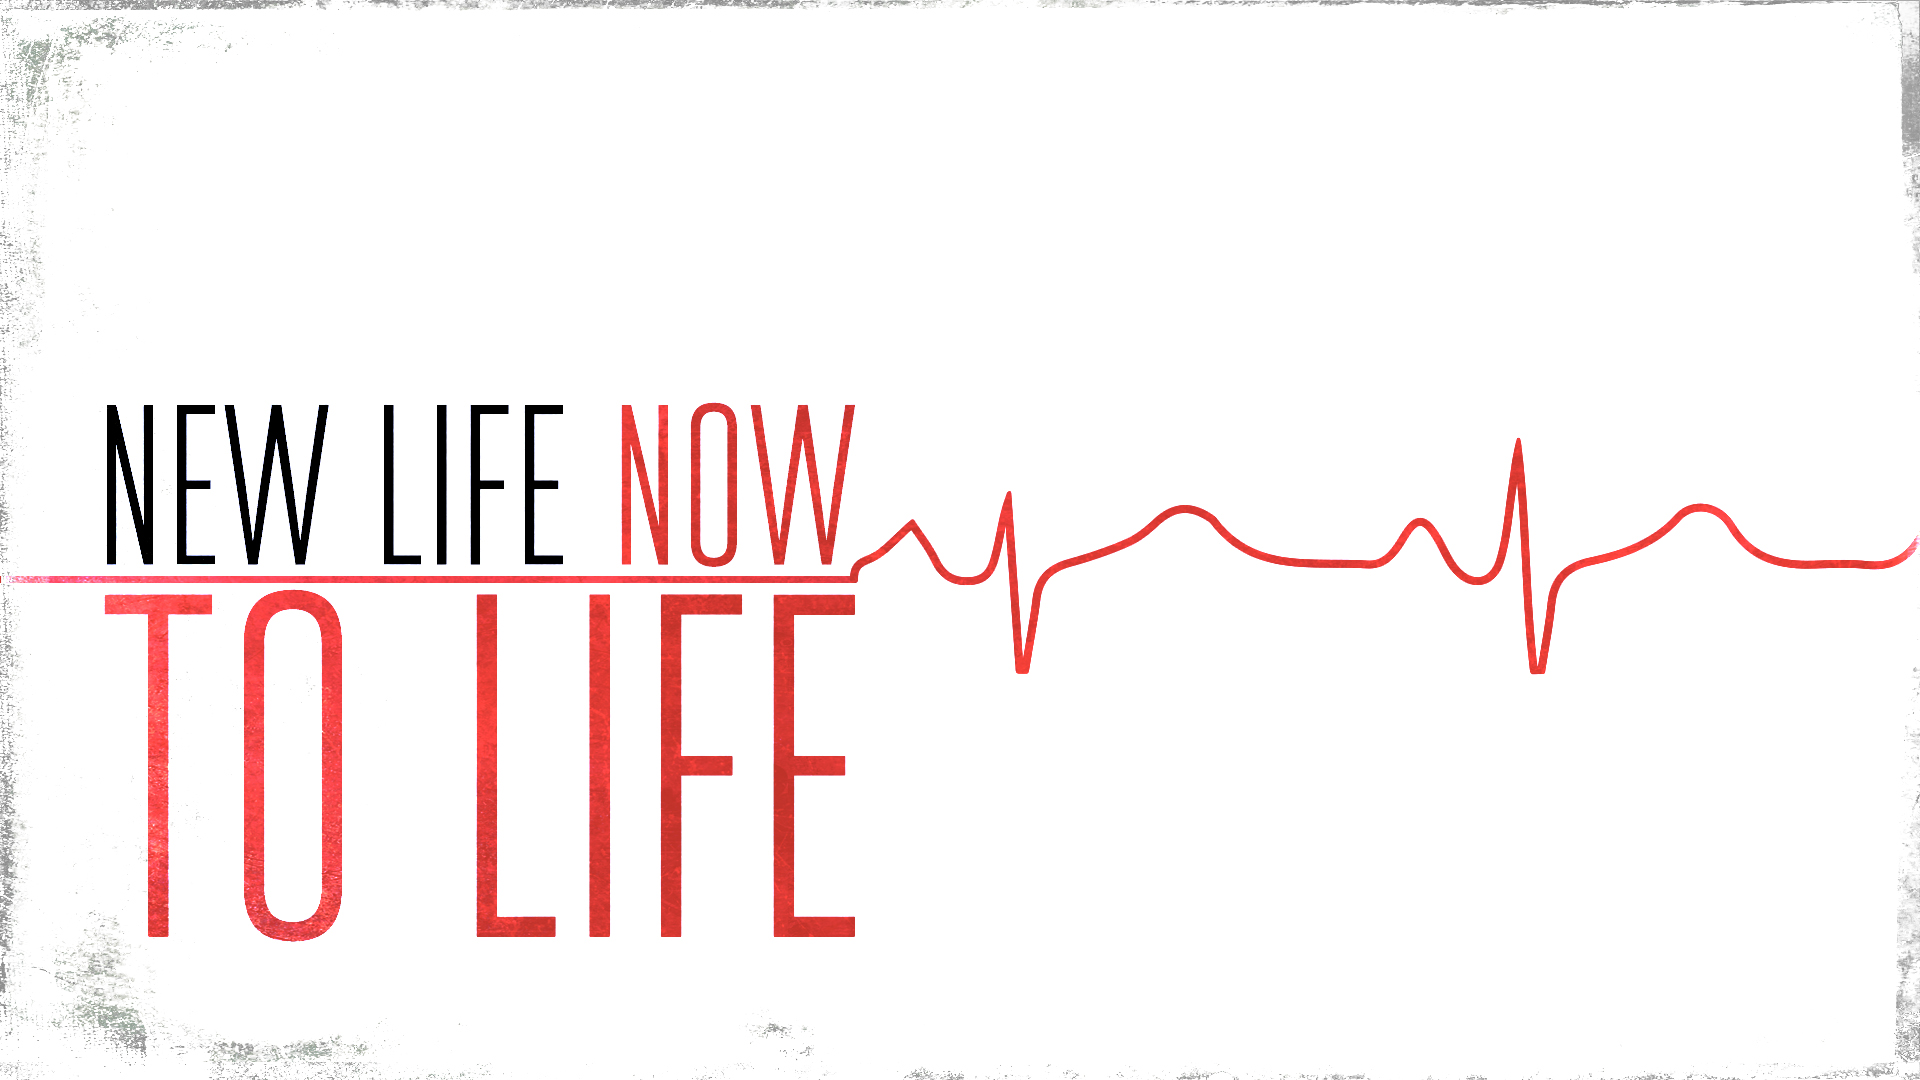 Mar. 27 – New Life Now: Easter